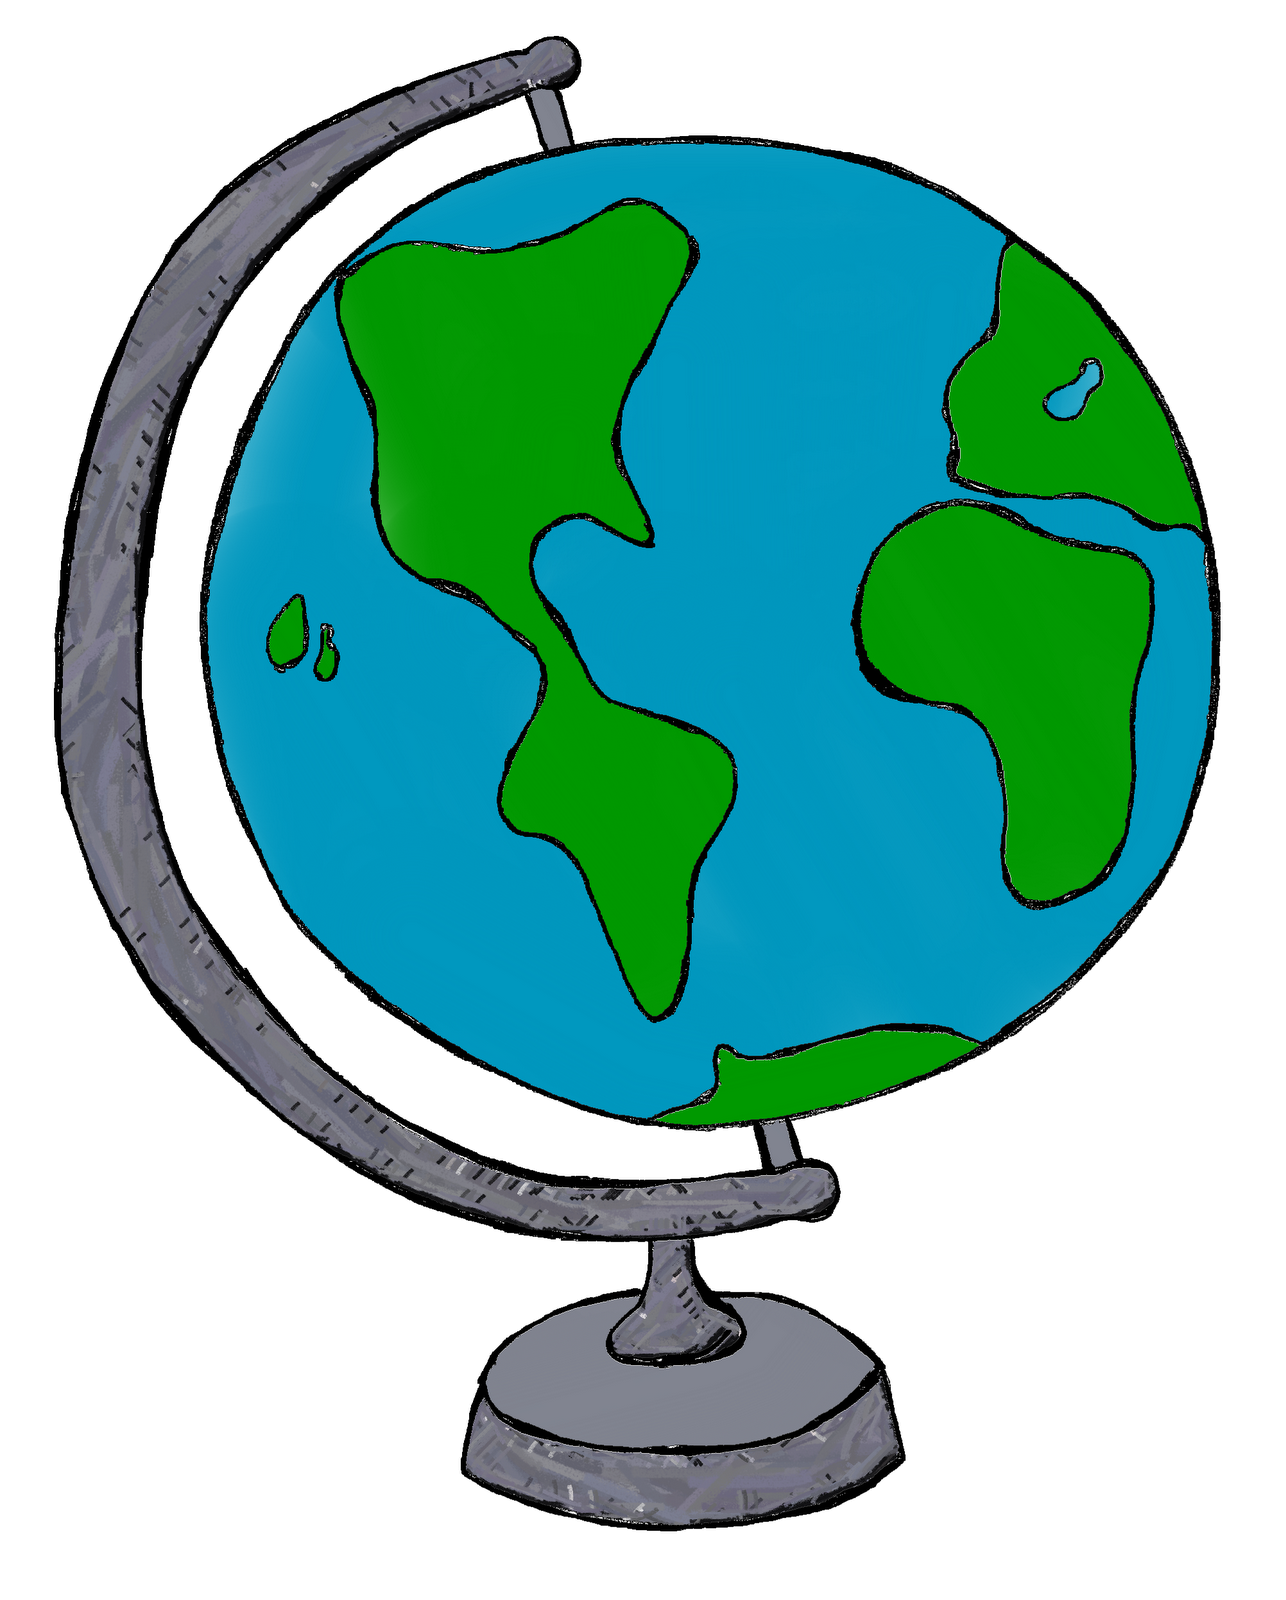 Iron clipart clip art. Earth science at getdrawings